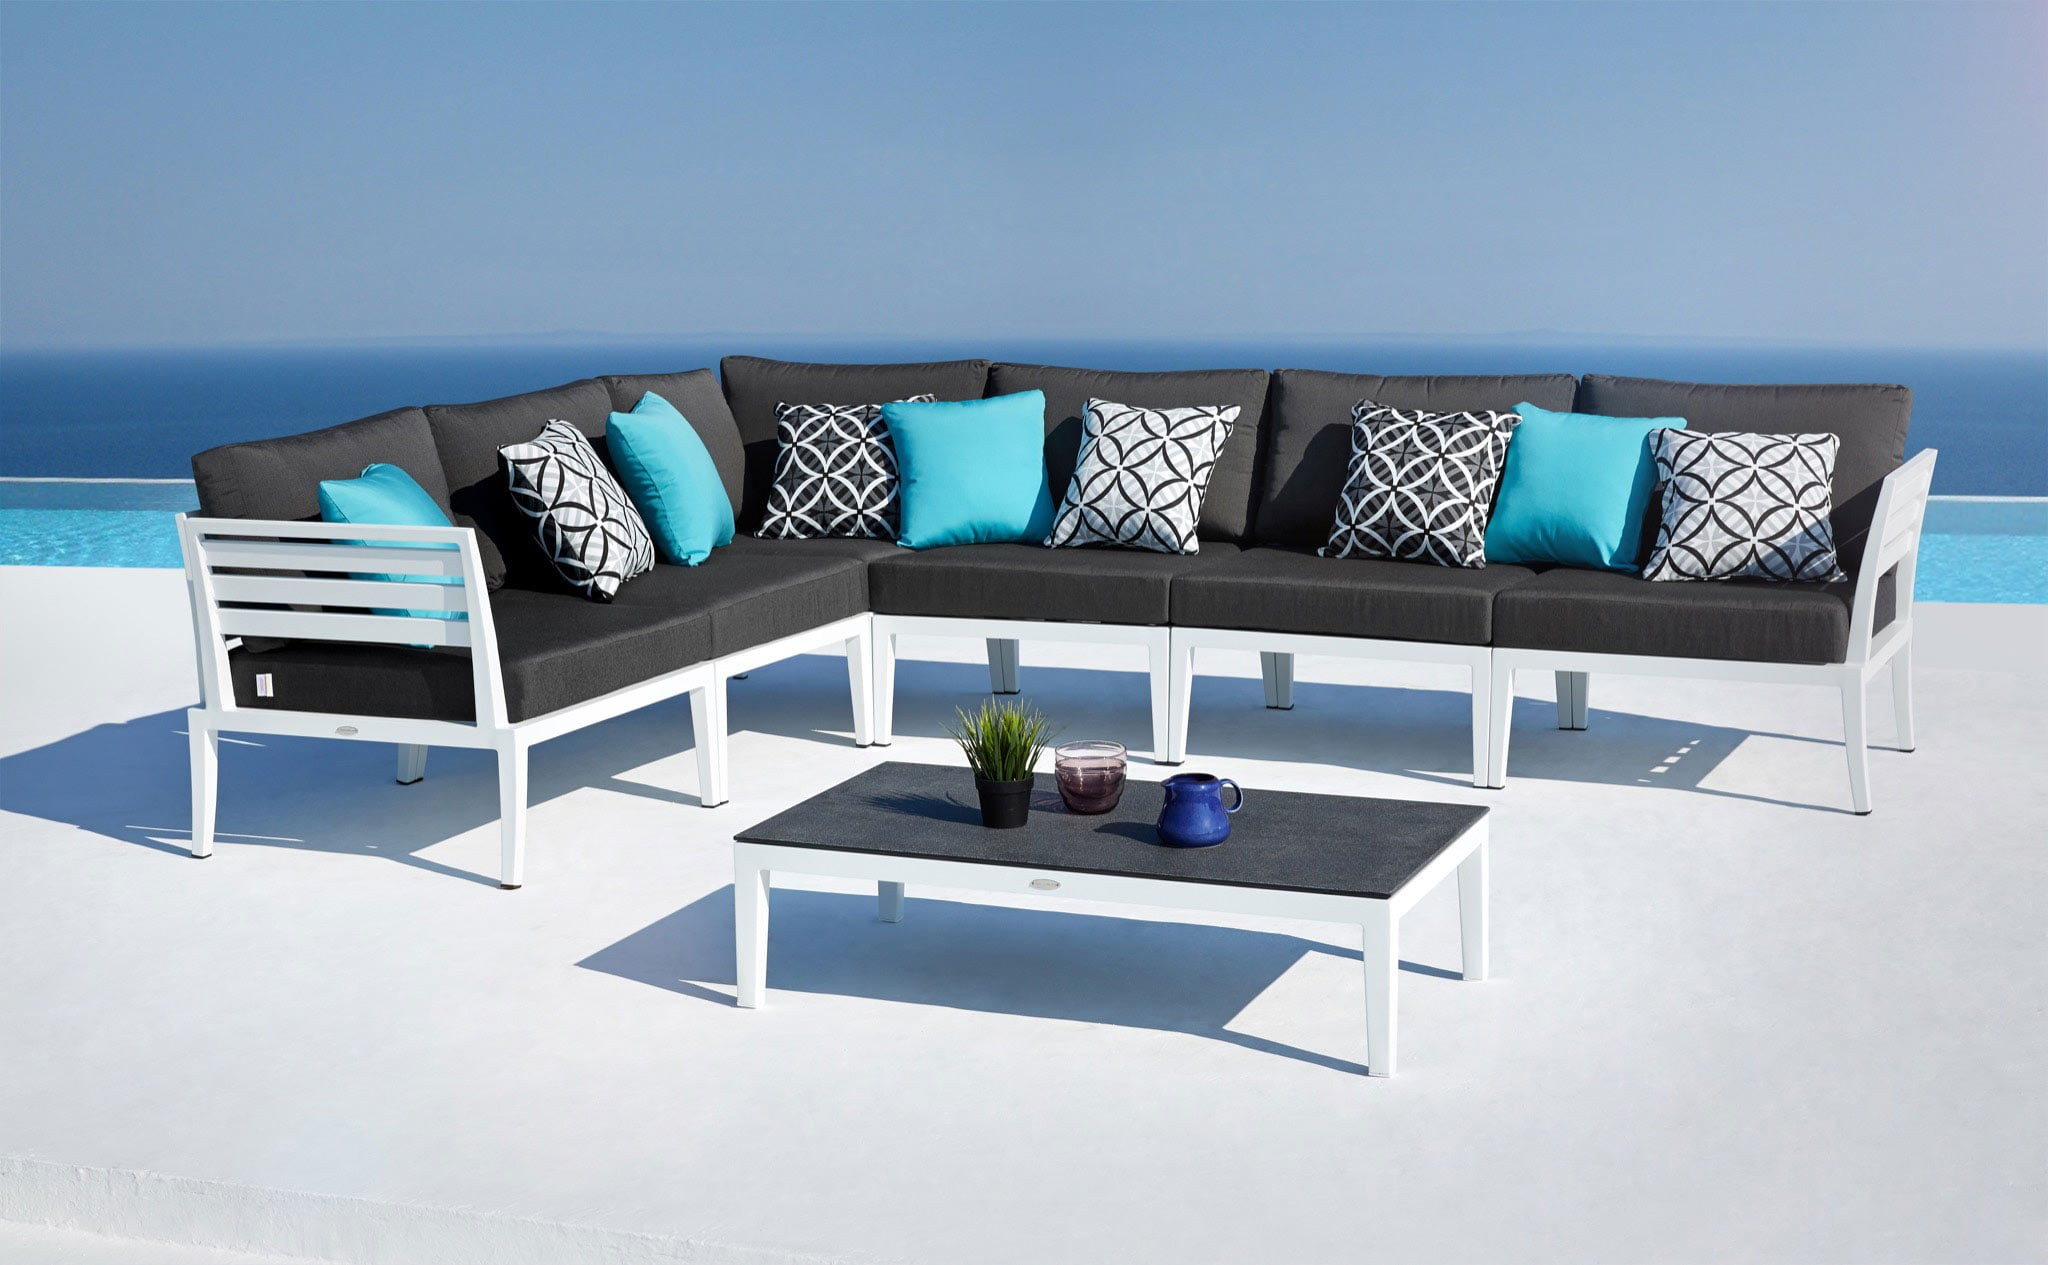 modern outdoor lounge furniture set joins oceanweave collection. Black Bedroom Furniture Sets. Home Design Ideas